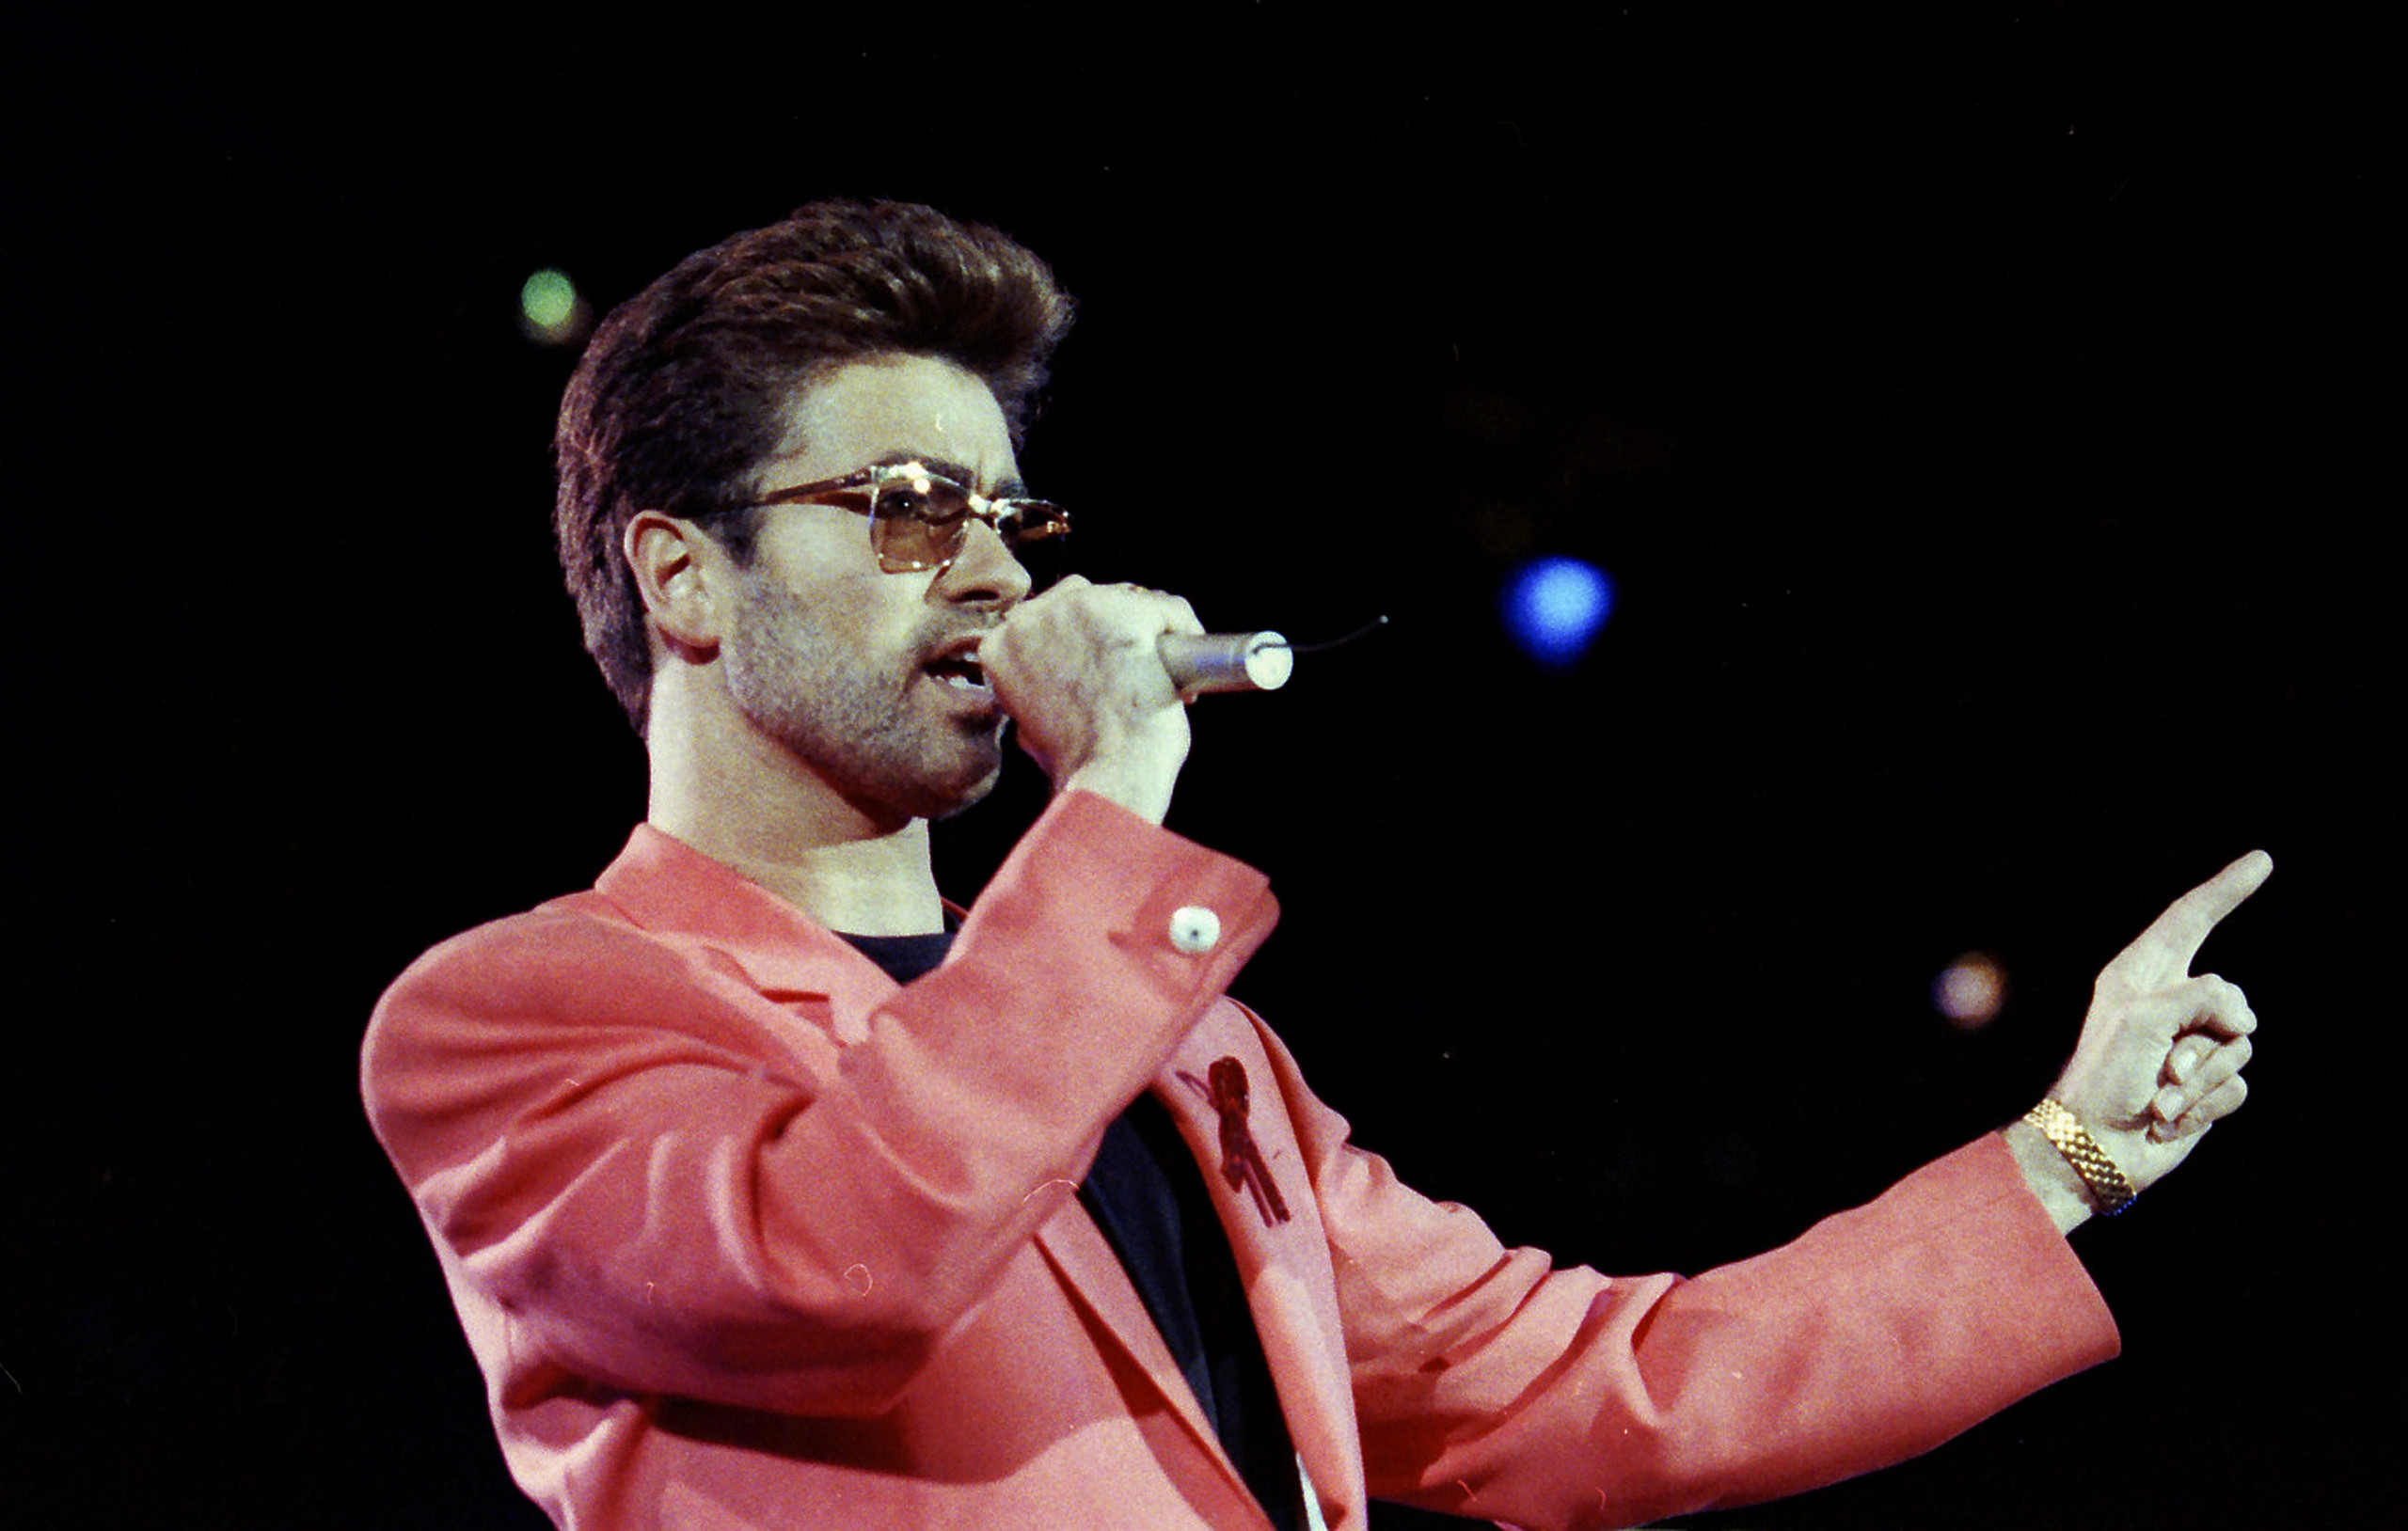 Singer George Michael performs at the Freddie Mercury Tribute Concert for AIDS Awareness, at Wembley Stadium, in London Britain April 20, 1992. Michael died on December 25, 2016.   REUTERS/Dylan Martinez/Files